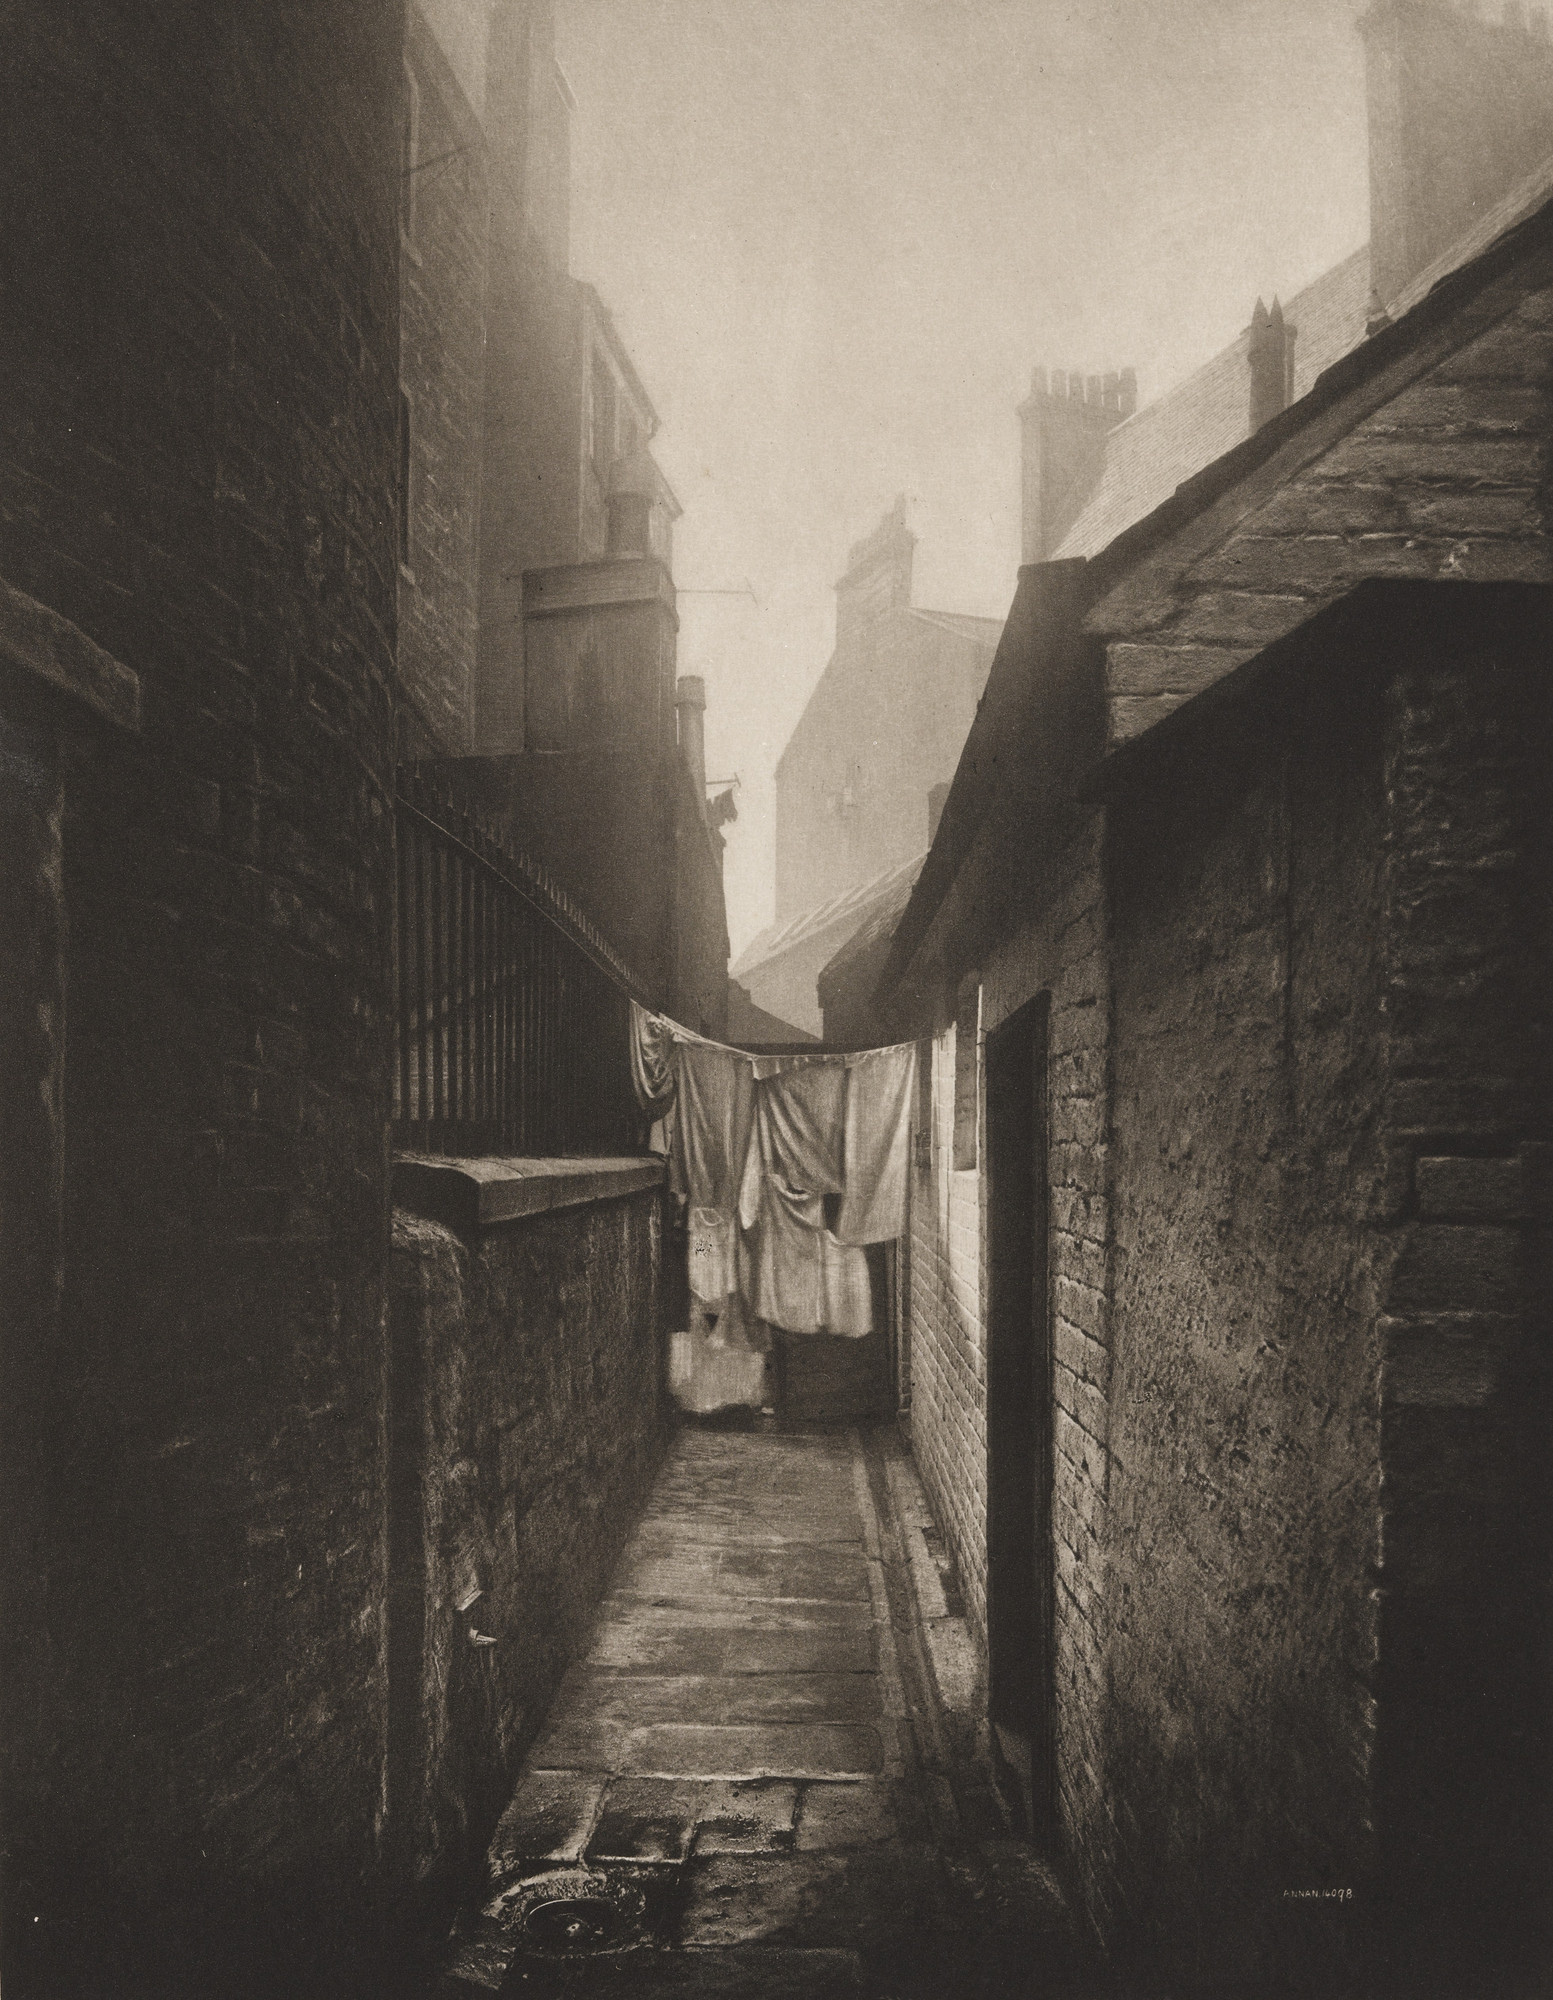 Thomas Annan. Close No. 11 Bridgegate. 1897